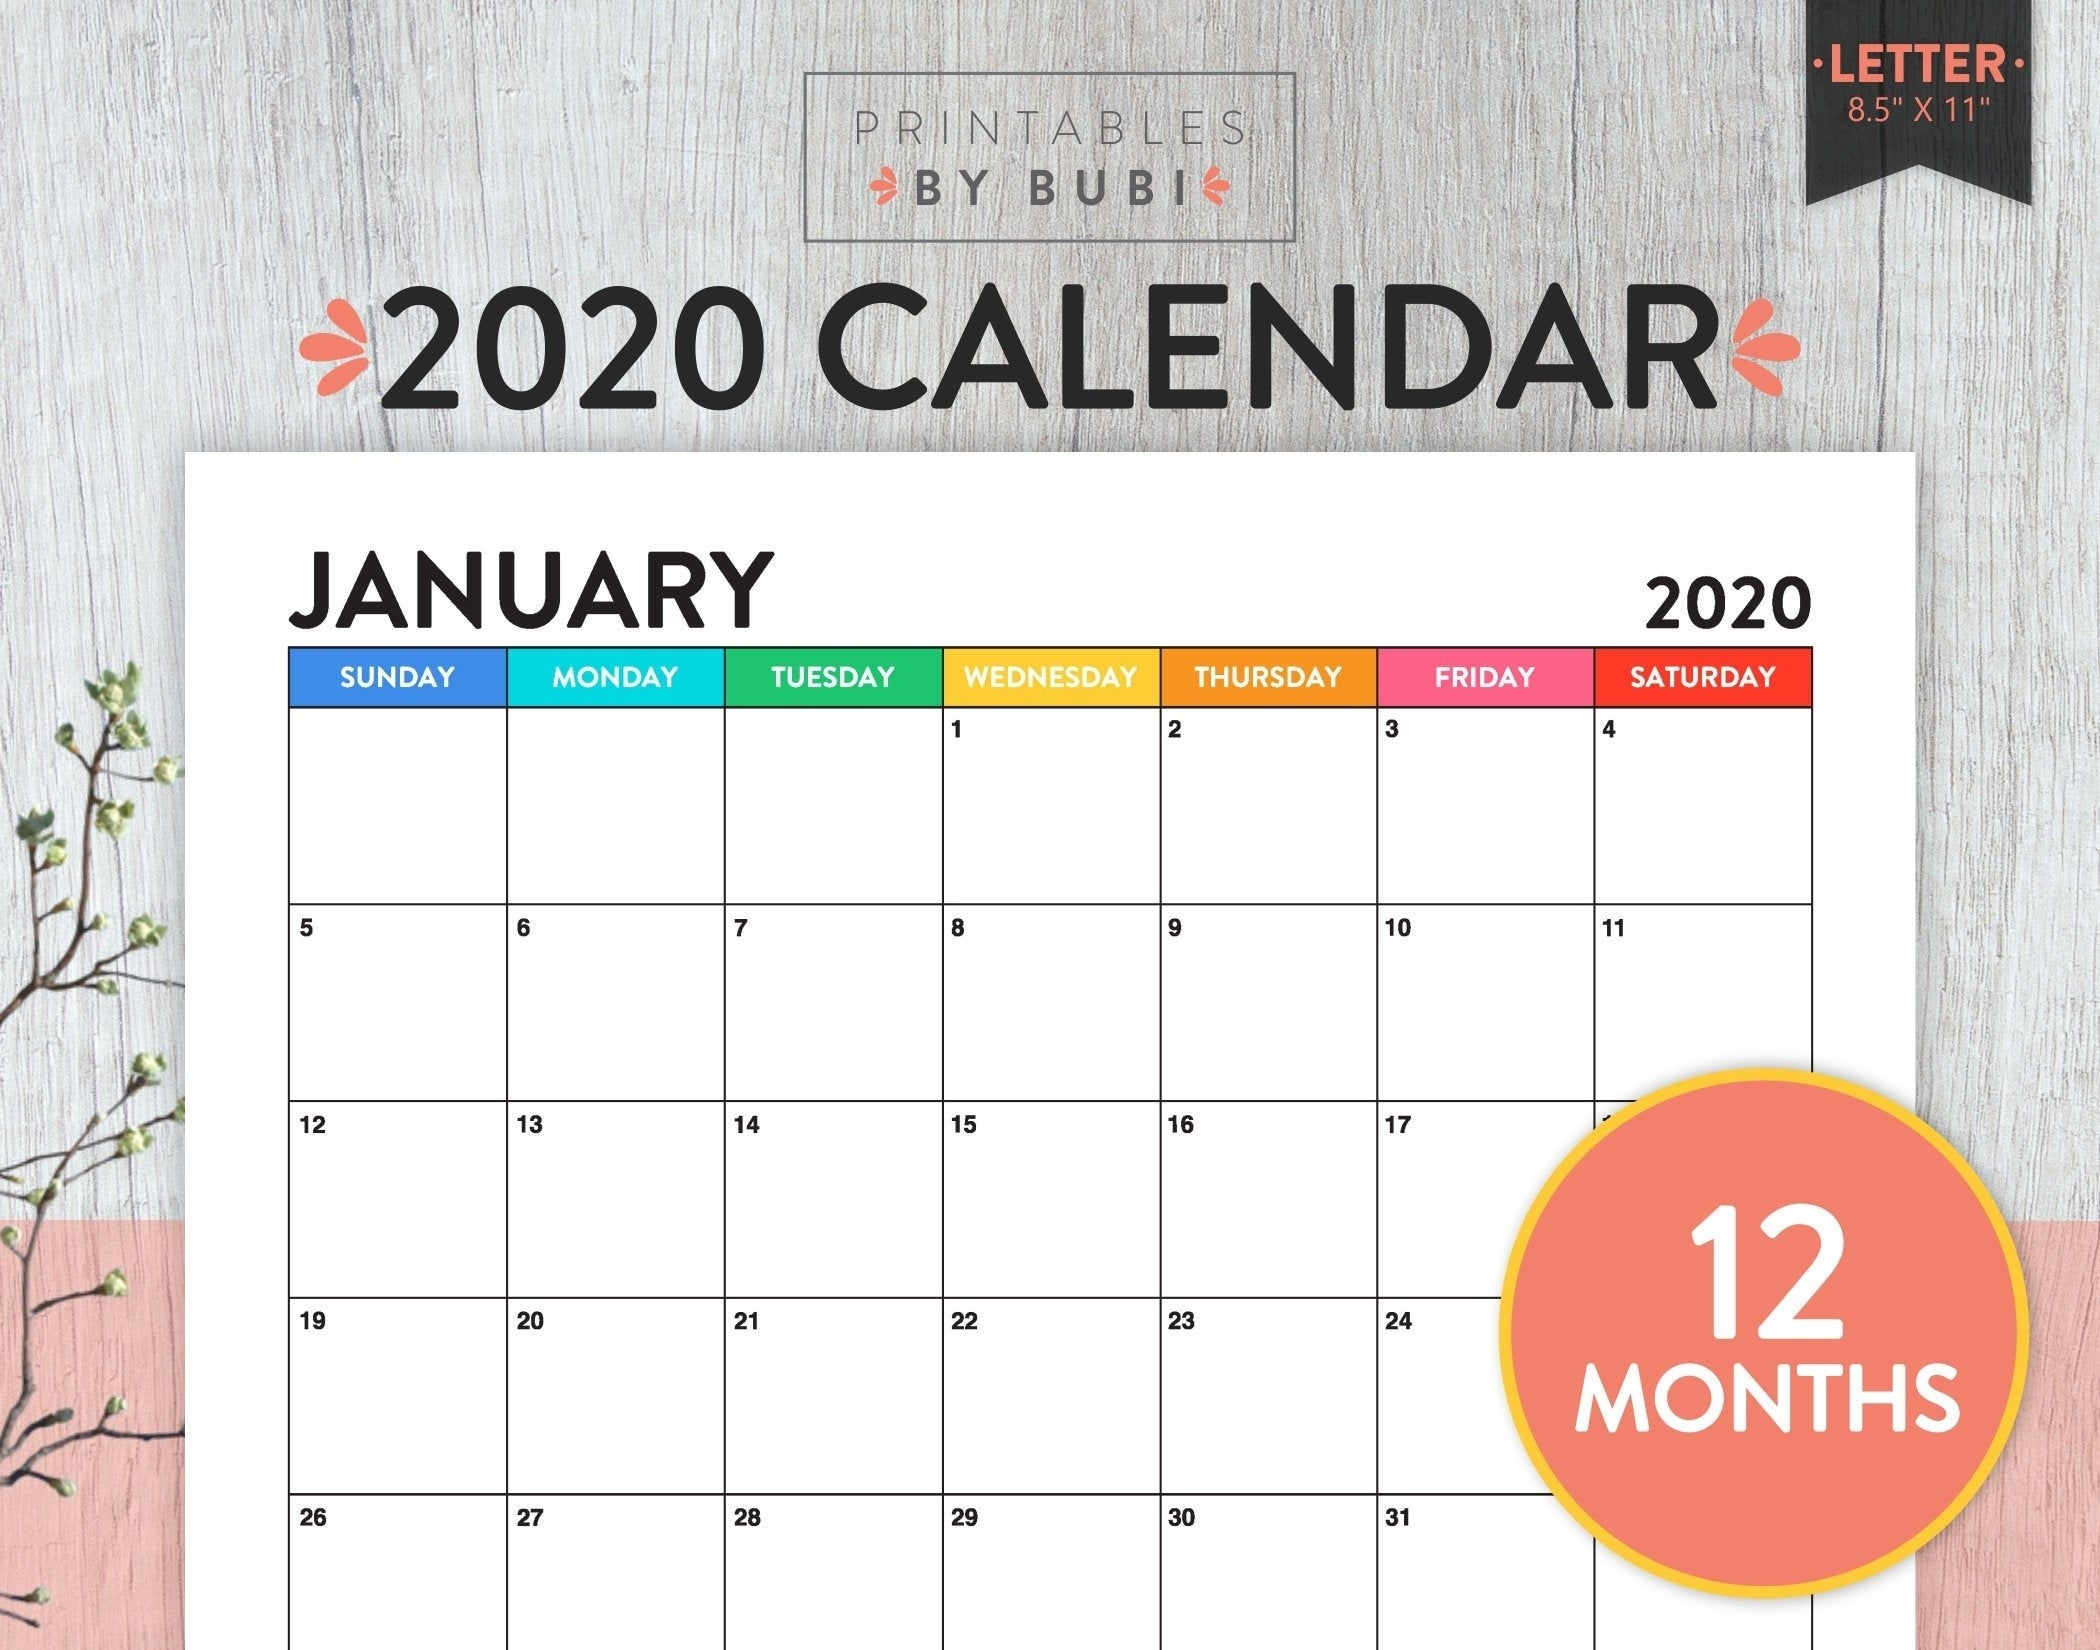 Sale Printable Monthly Calendar 2020 Calendar Printable pertaining to Individual Monthly Printable Calendars For 2020 And 2021